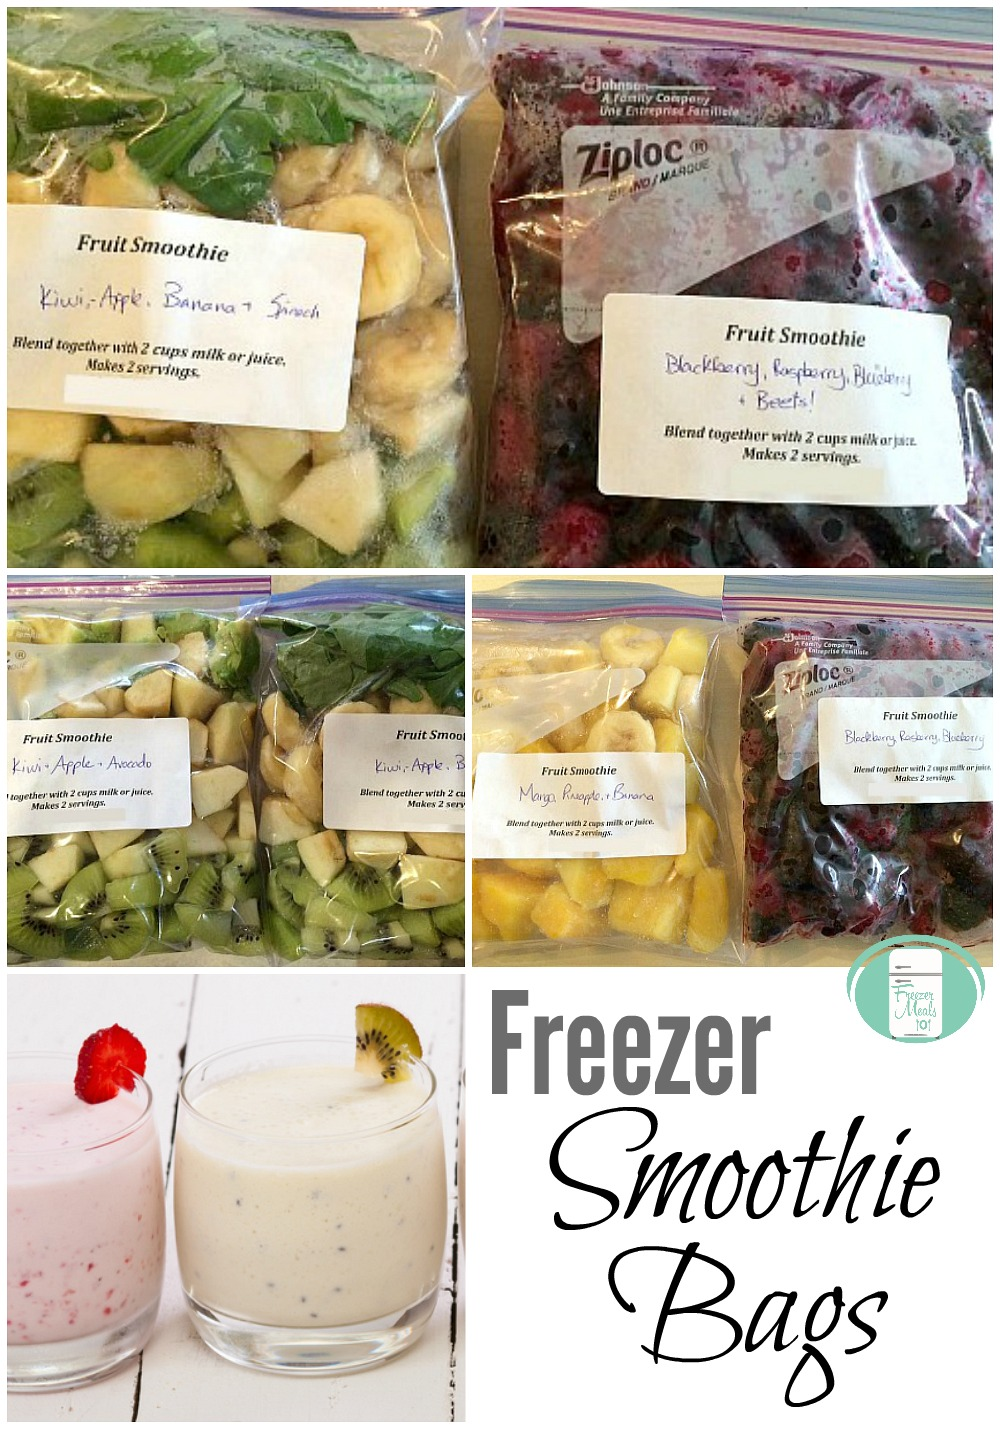 These freezer smoothie bags can be made in all kinds of delicious fruit and vegetable combinations.